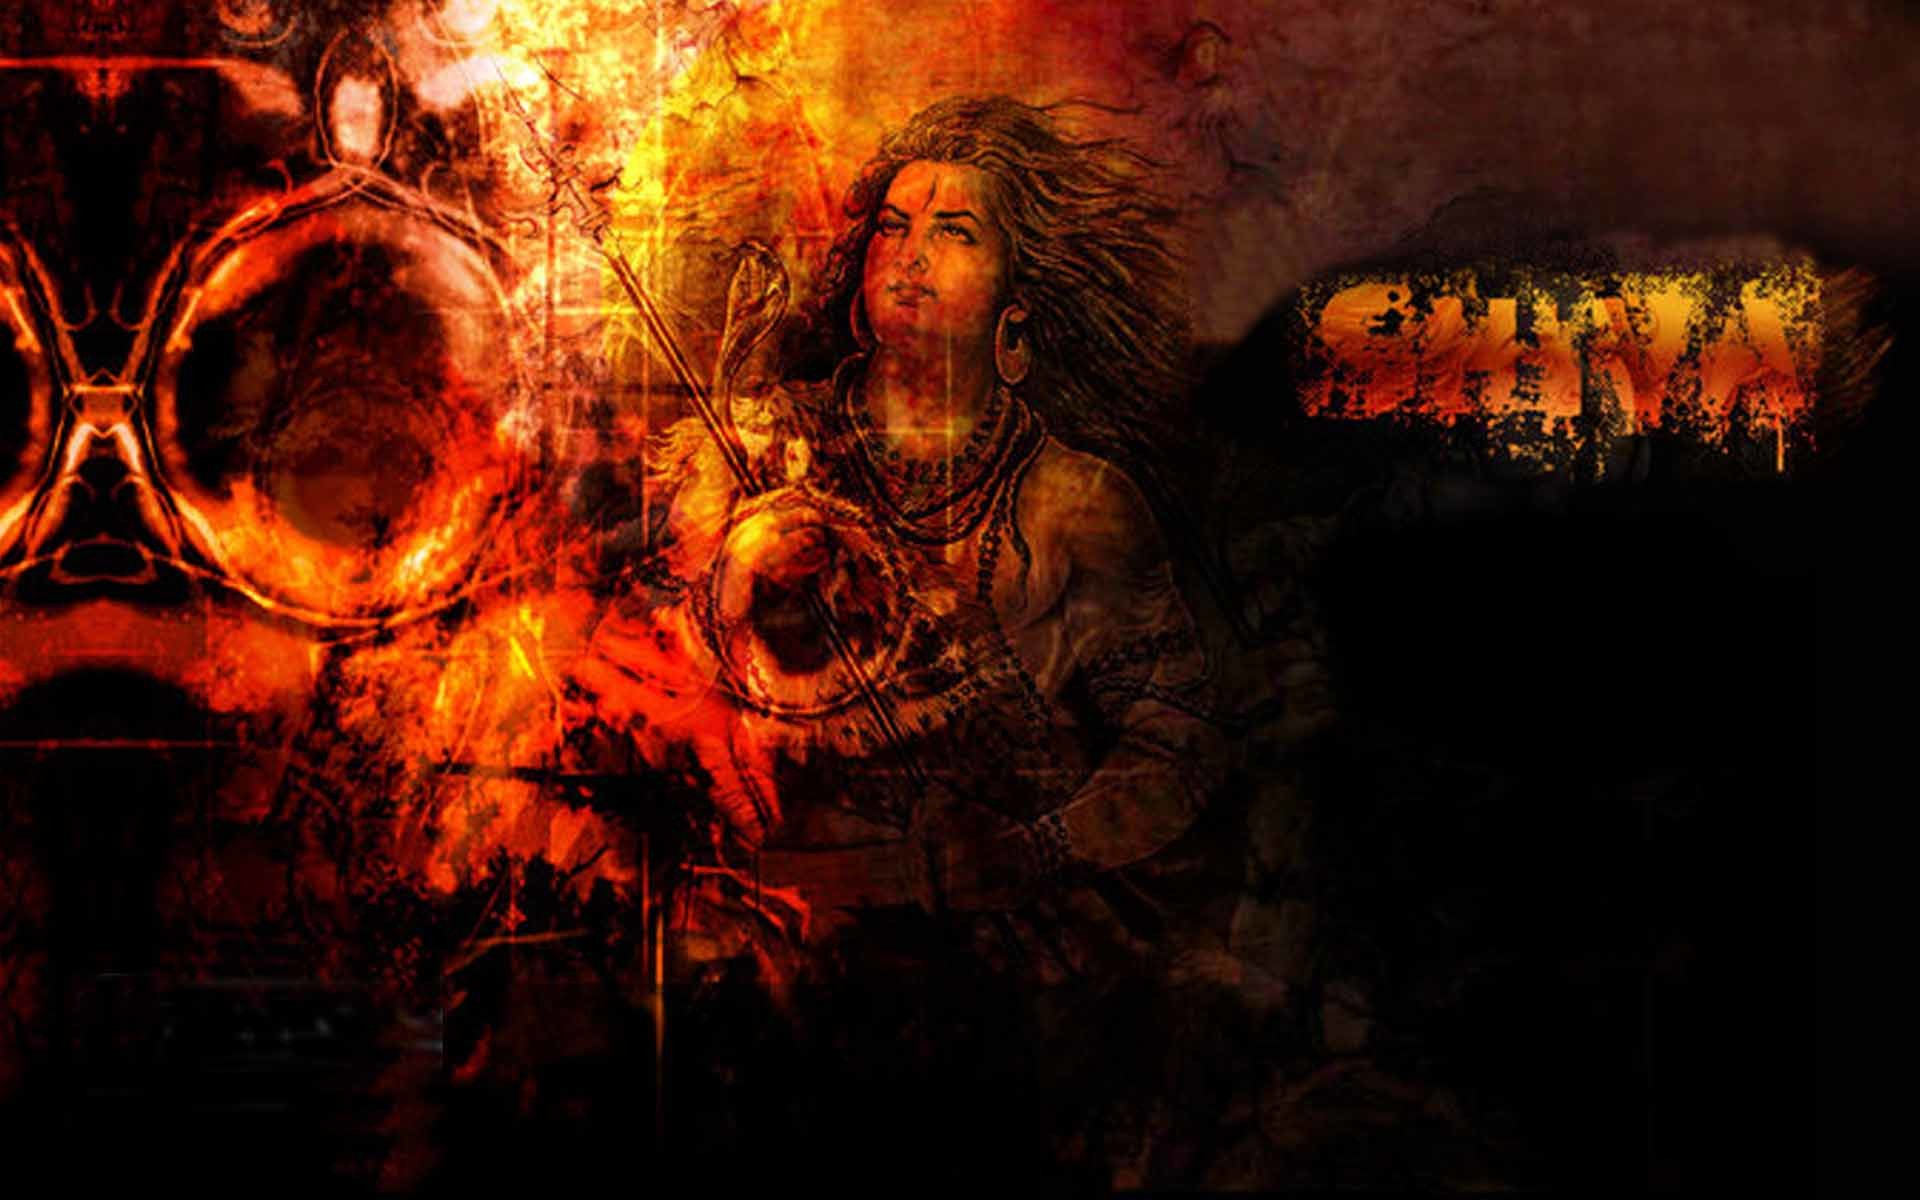 1920x1200 lord shiva hd wallpapers for mobile free download #736481